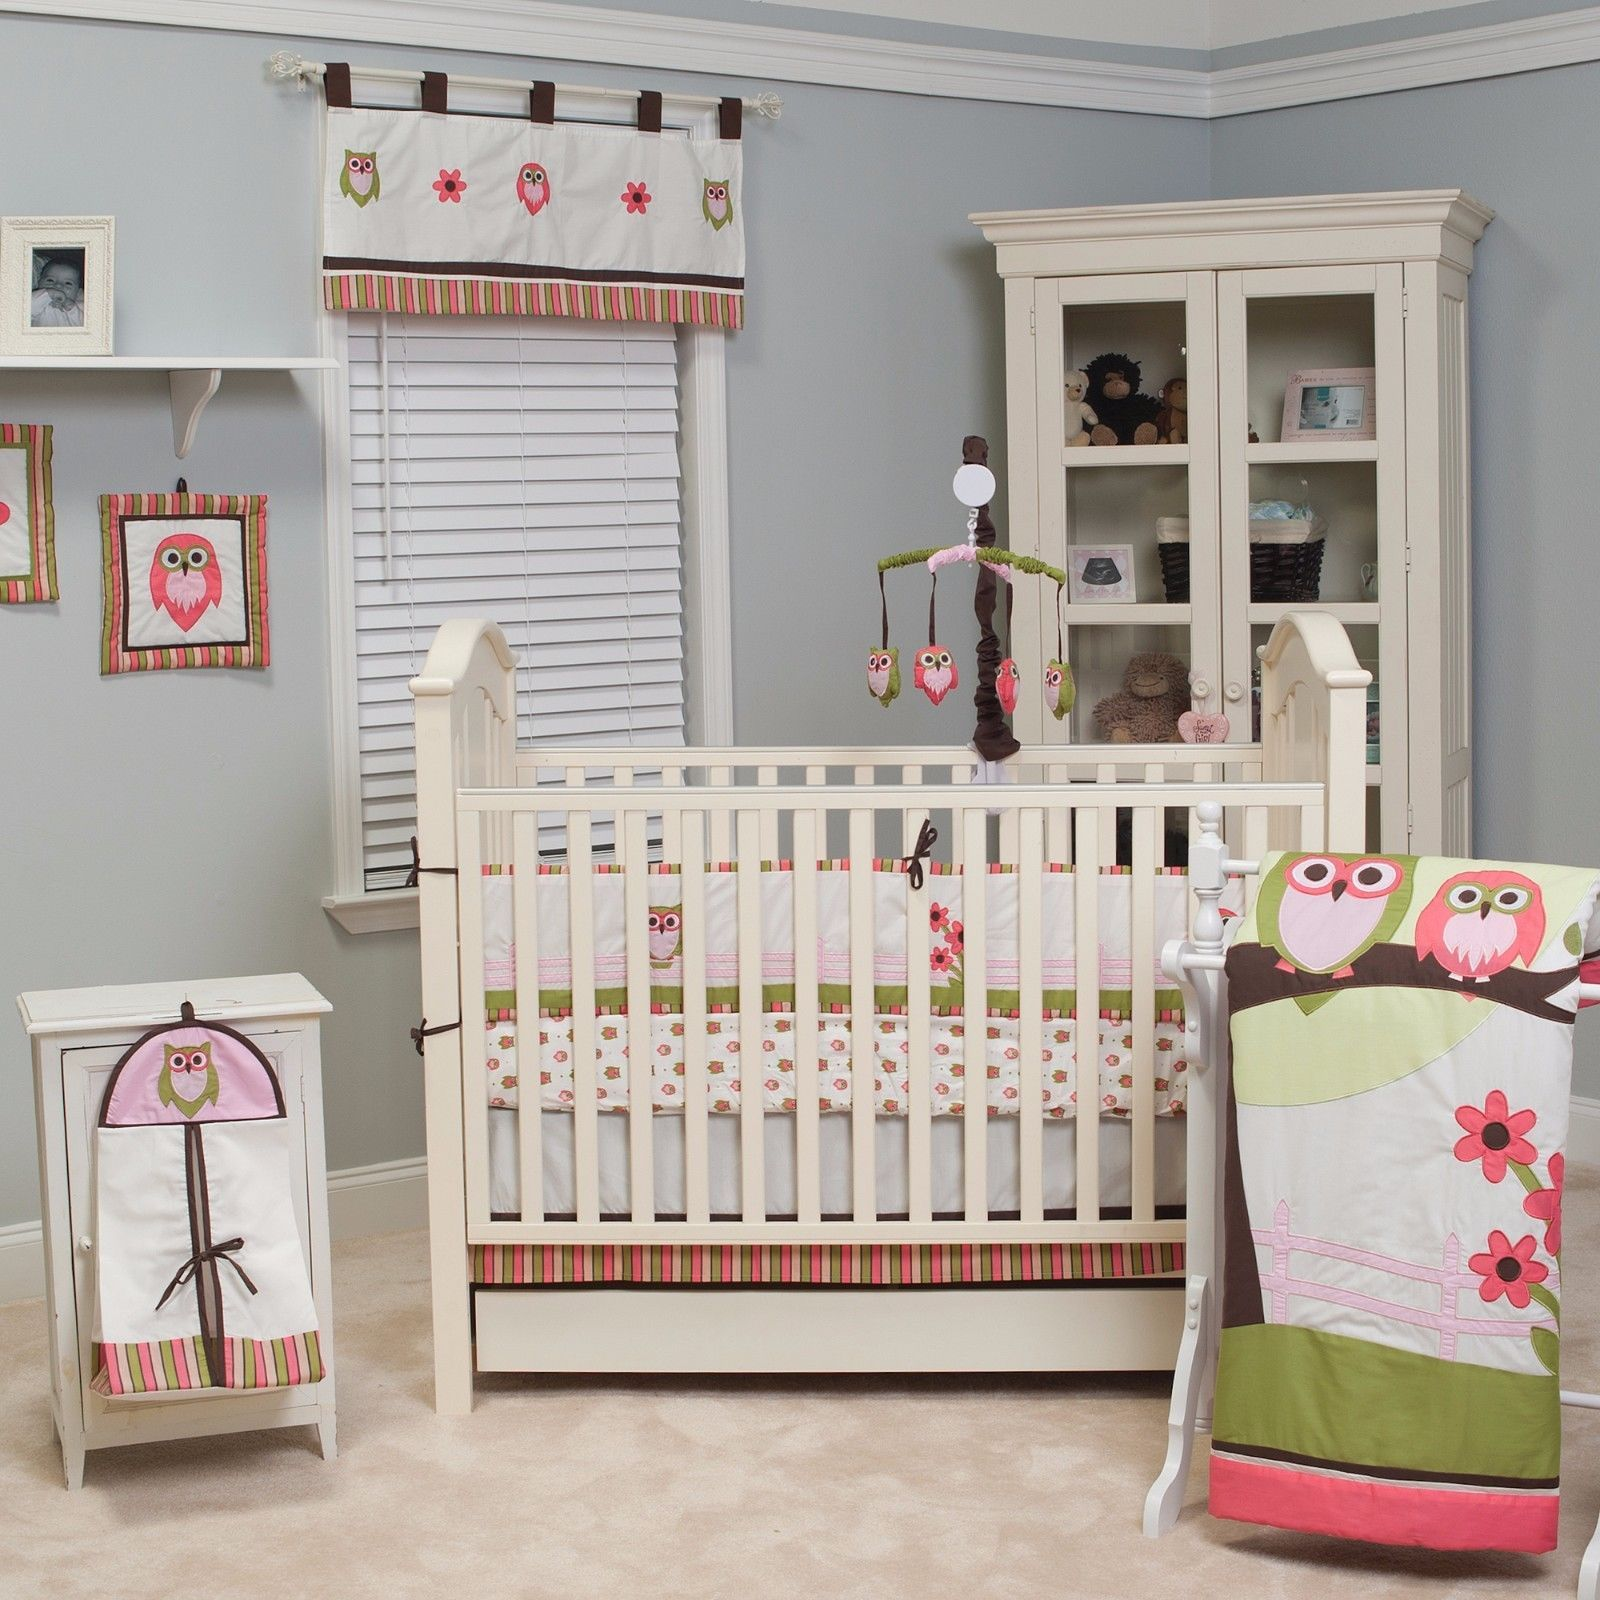 Crib Bedding Set 10 Piece Sweet Dream Owl Nursery Room Beautiful Shades Baby Bed Crib Bedding Cribs Crib Bedding Sets